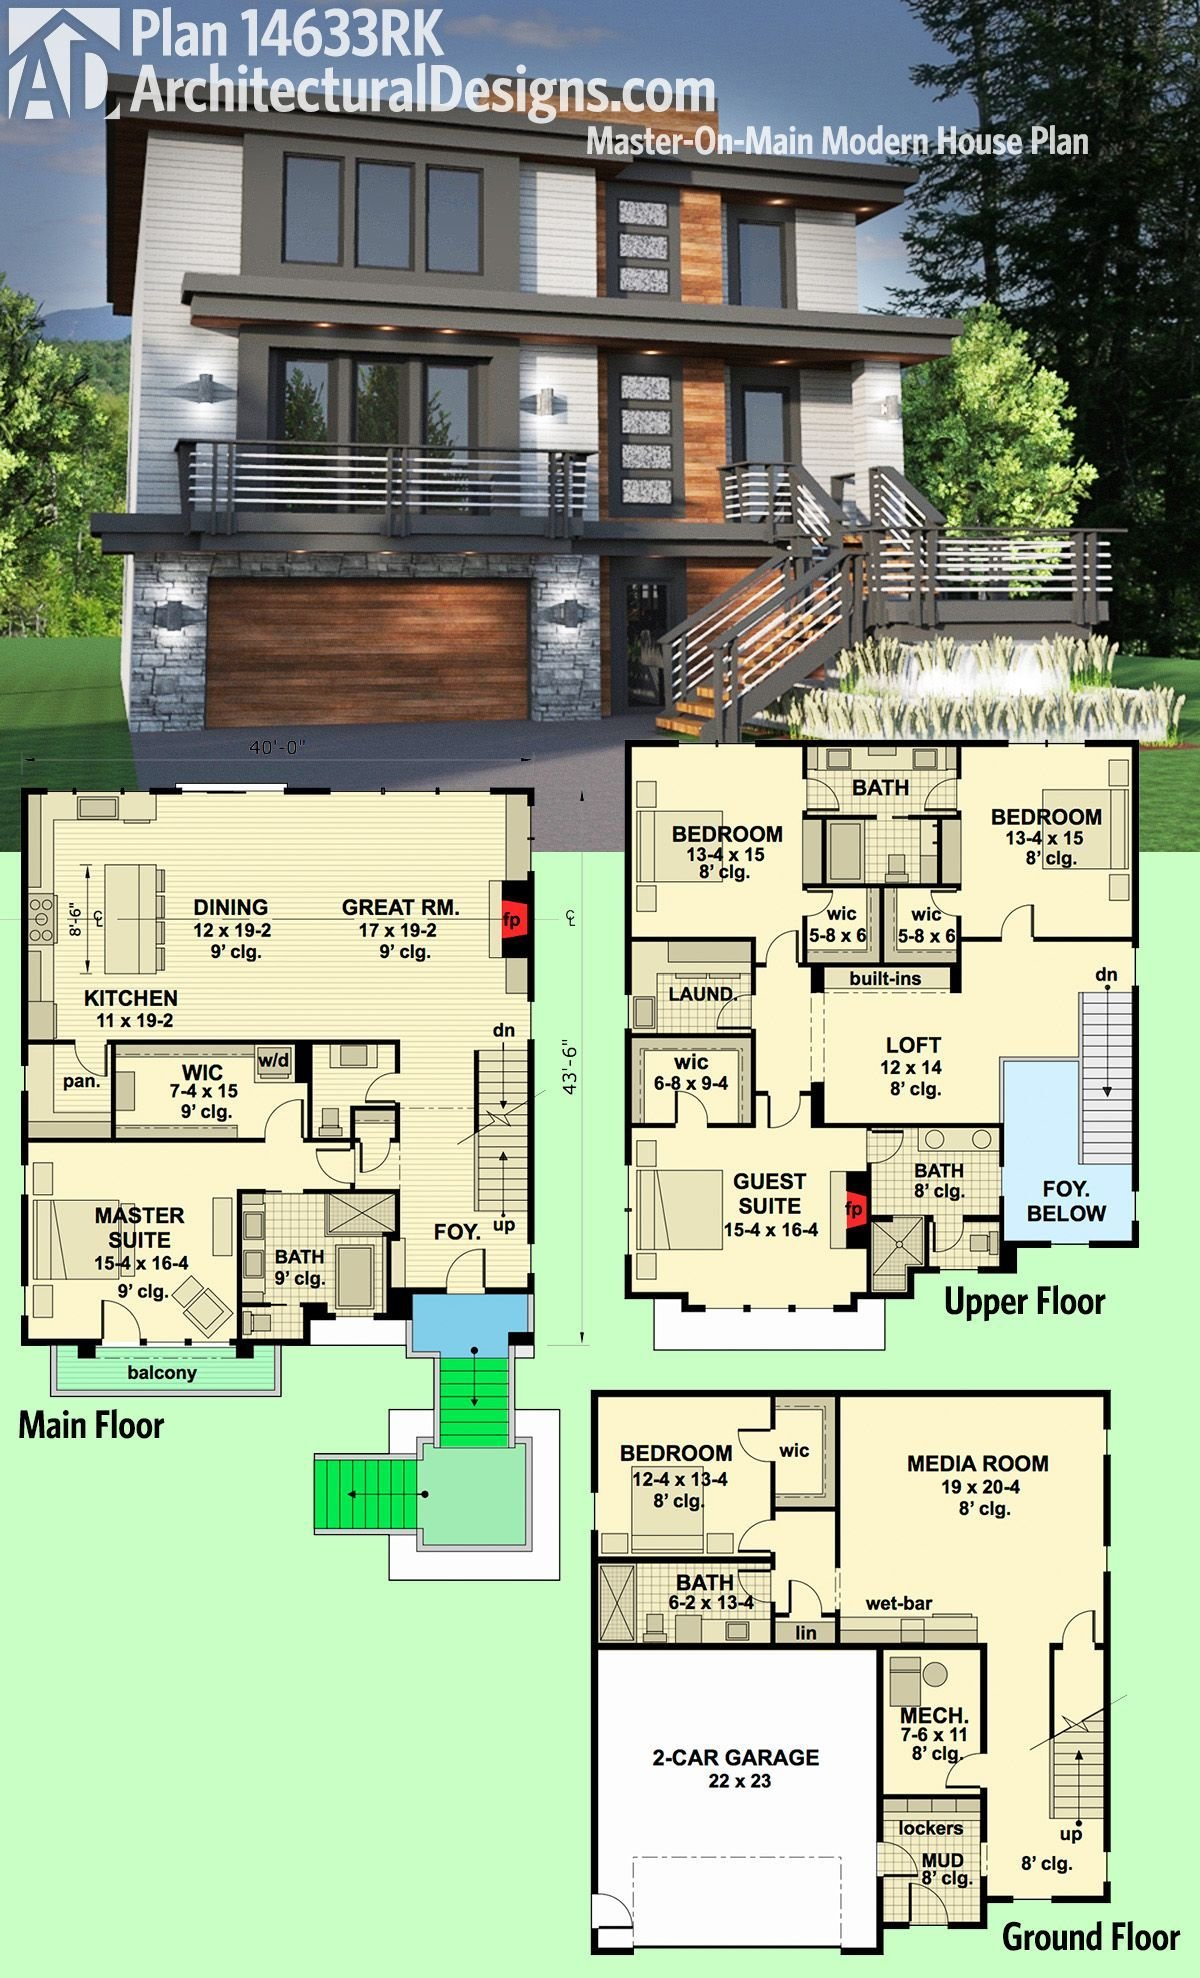 Best Plan 14633Rk Master On Main Modern House Plan In 2019 With Pictures